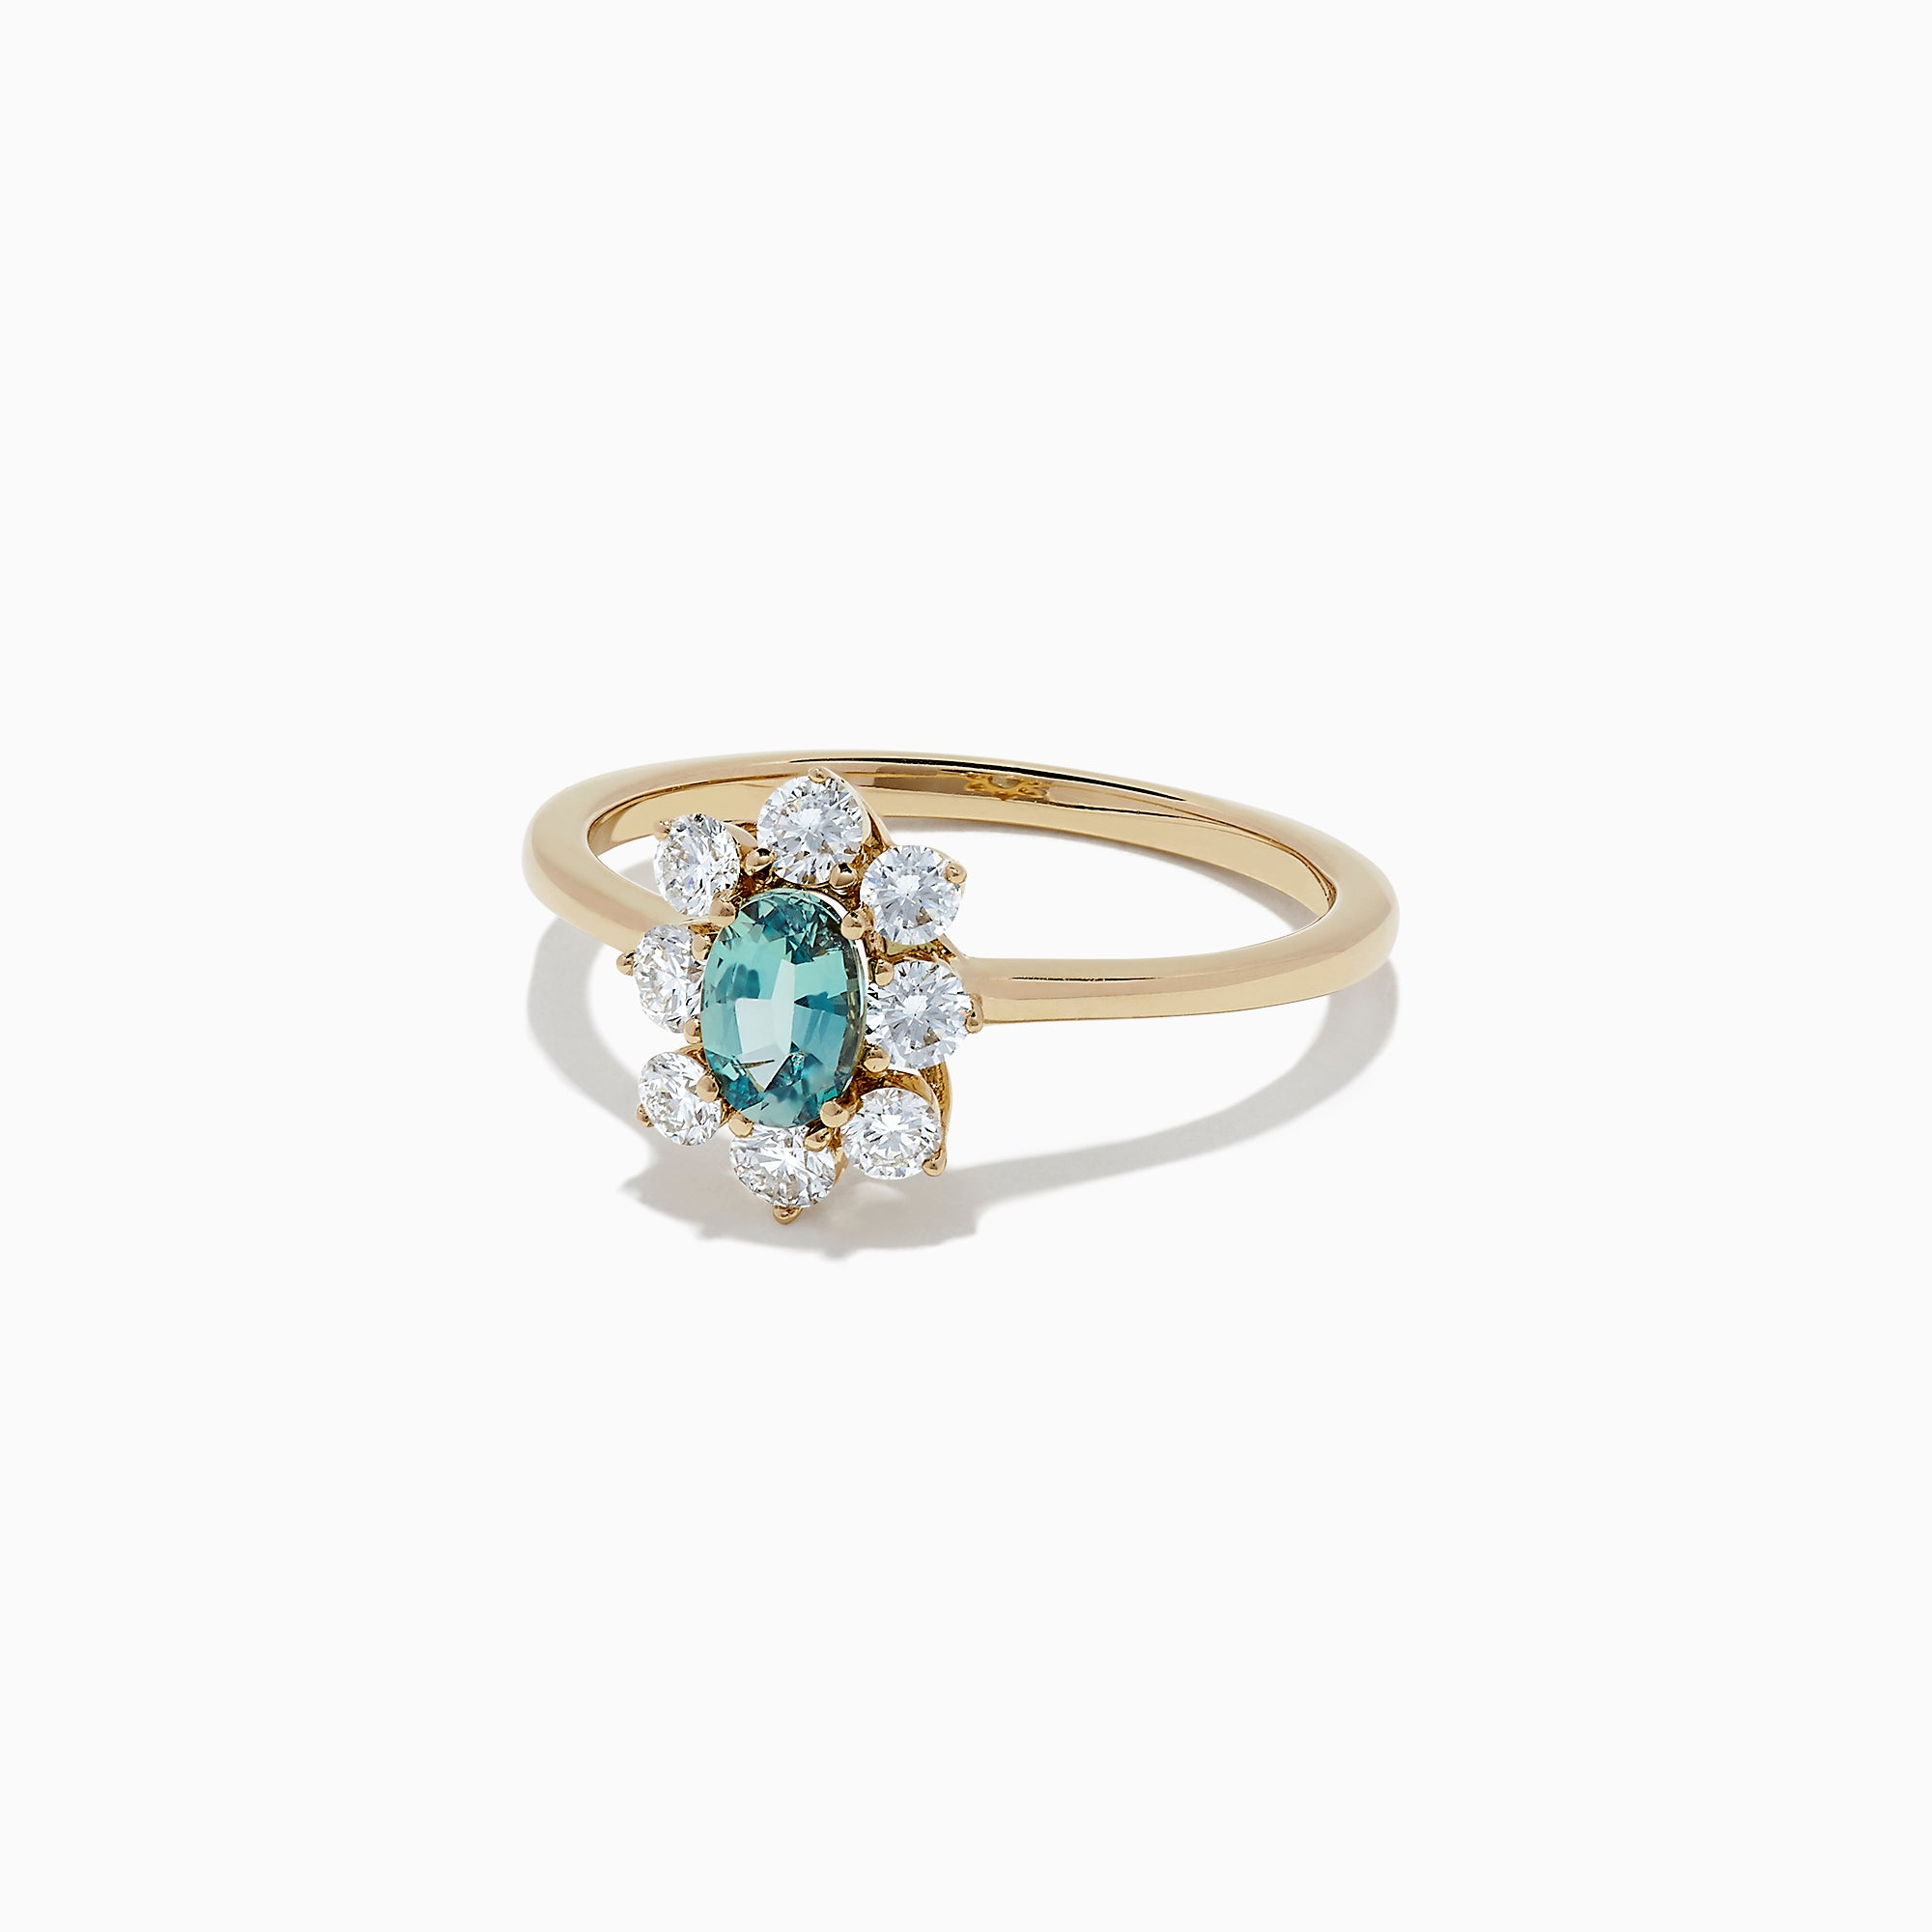 Effy 14K Yellow Gold Alexandrite and Diamond Ring, 0.84 TCW